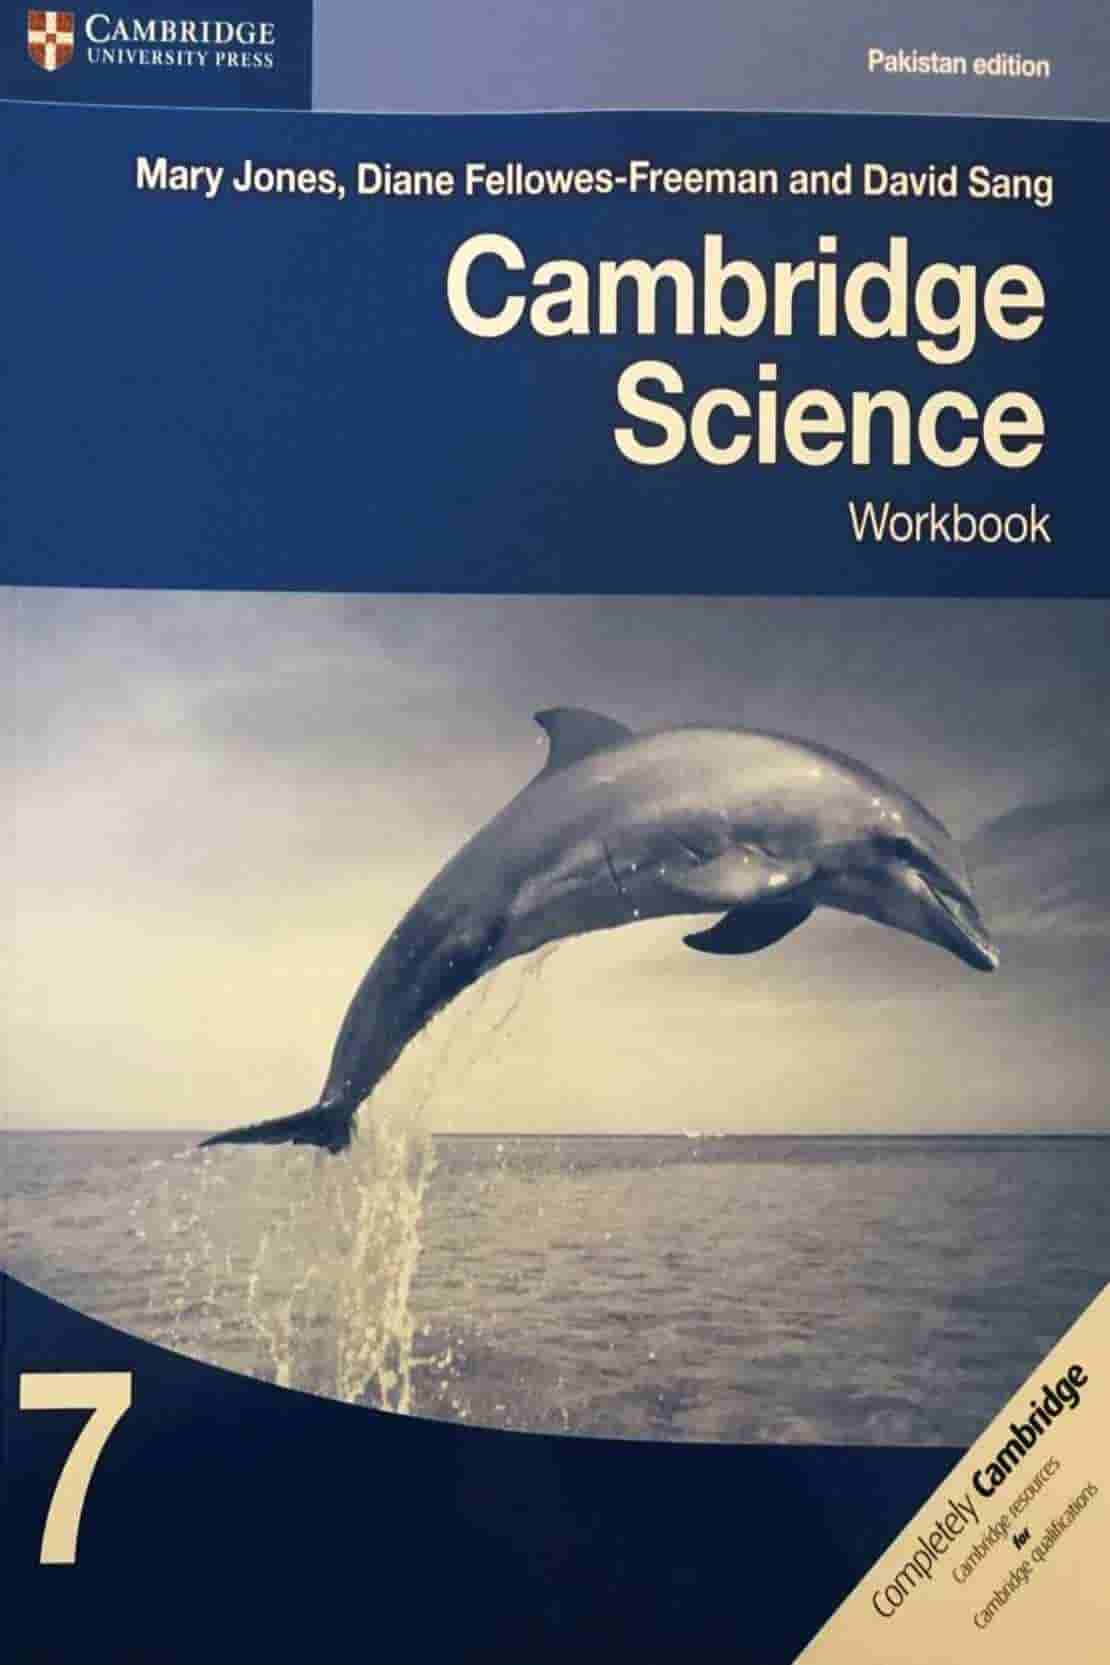 CAMBRIDGE SCIENCE WORKBOOK 7 PAKISTAN EDITION CLASS 6